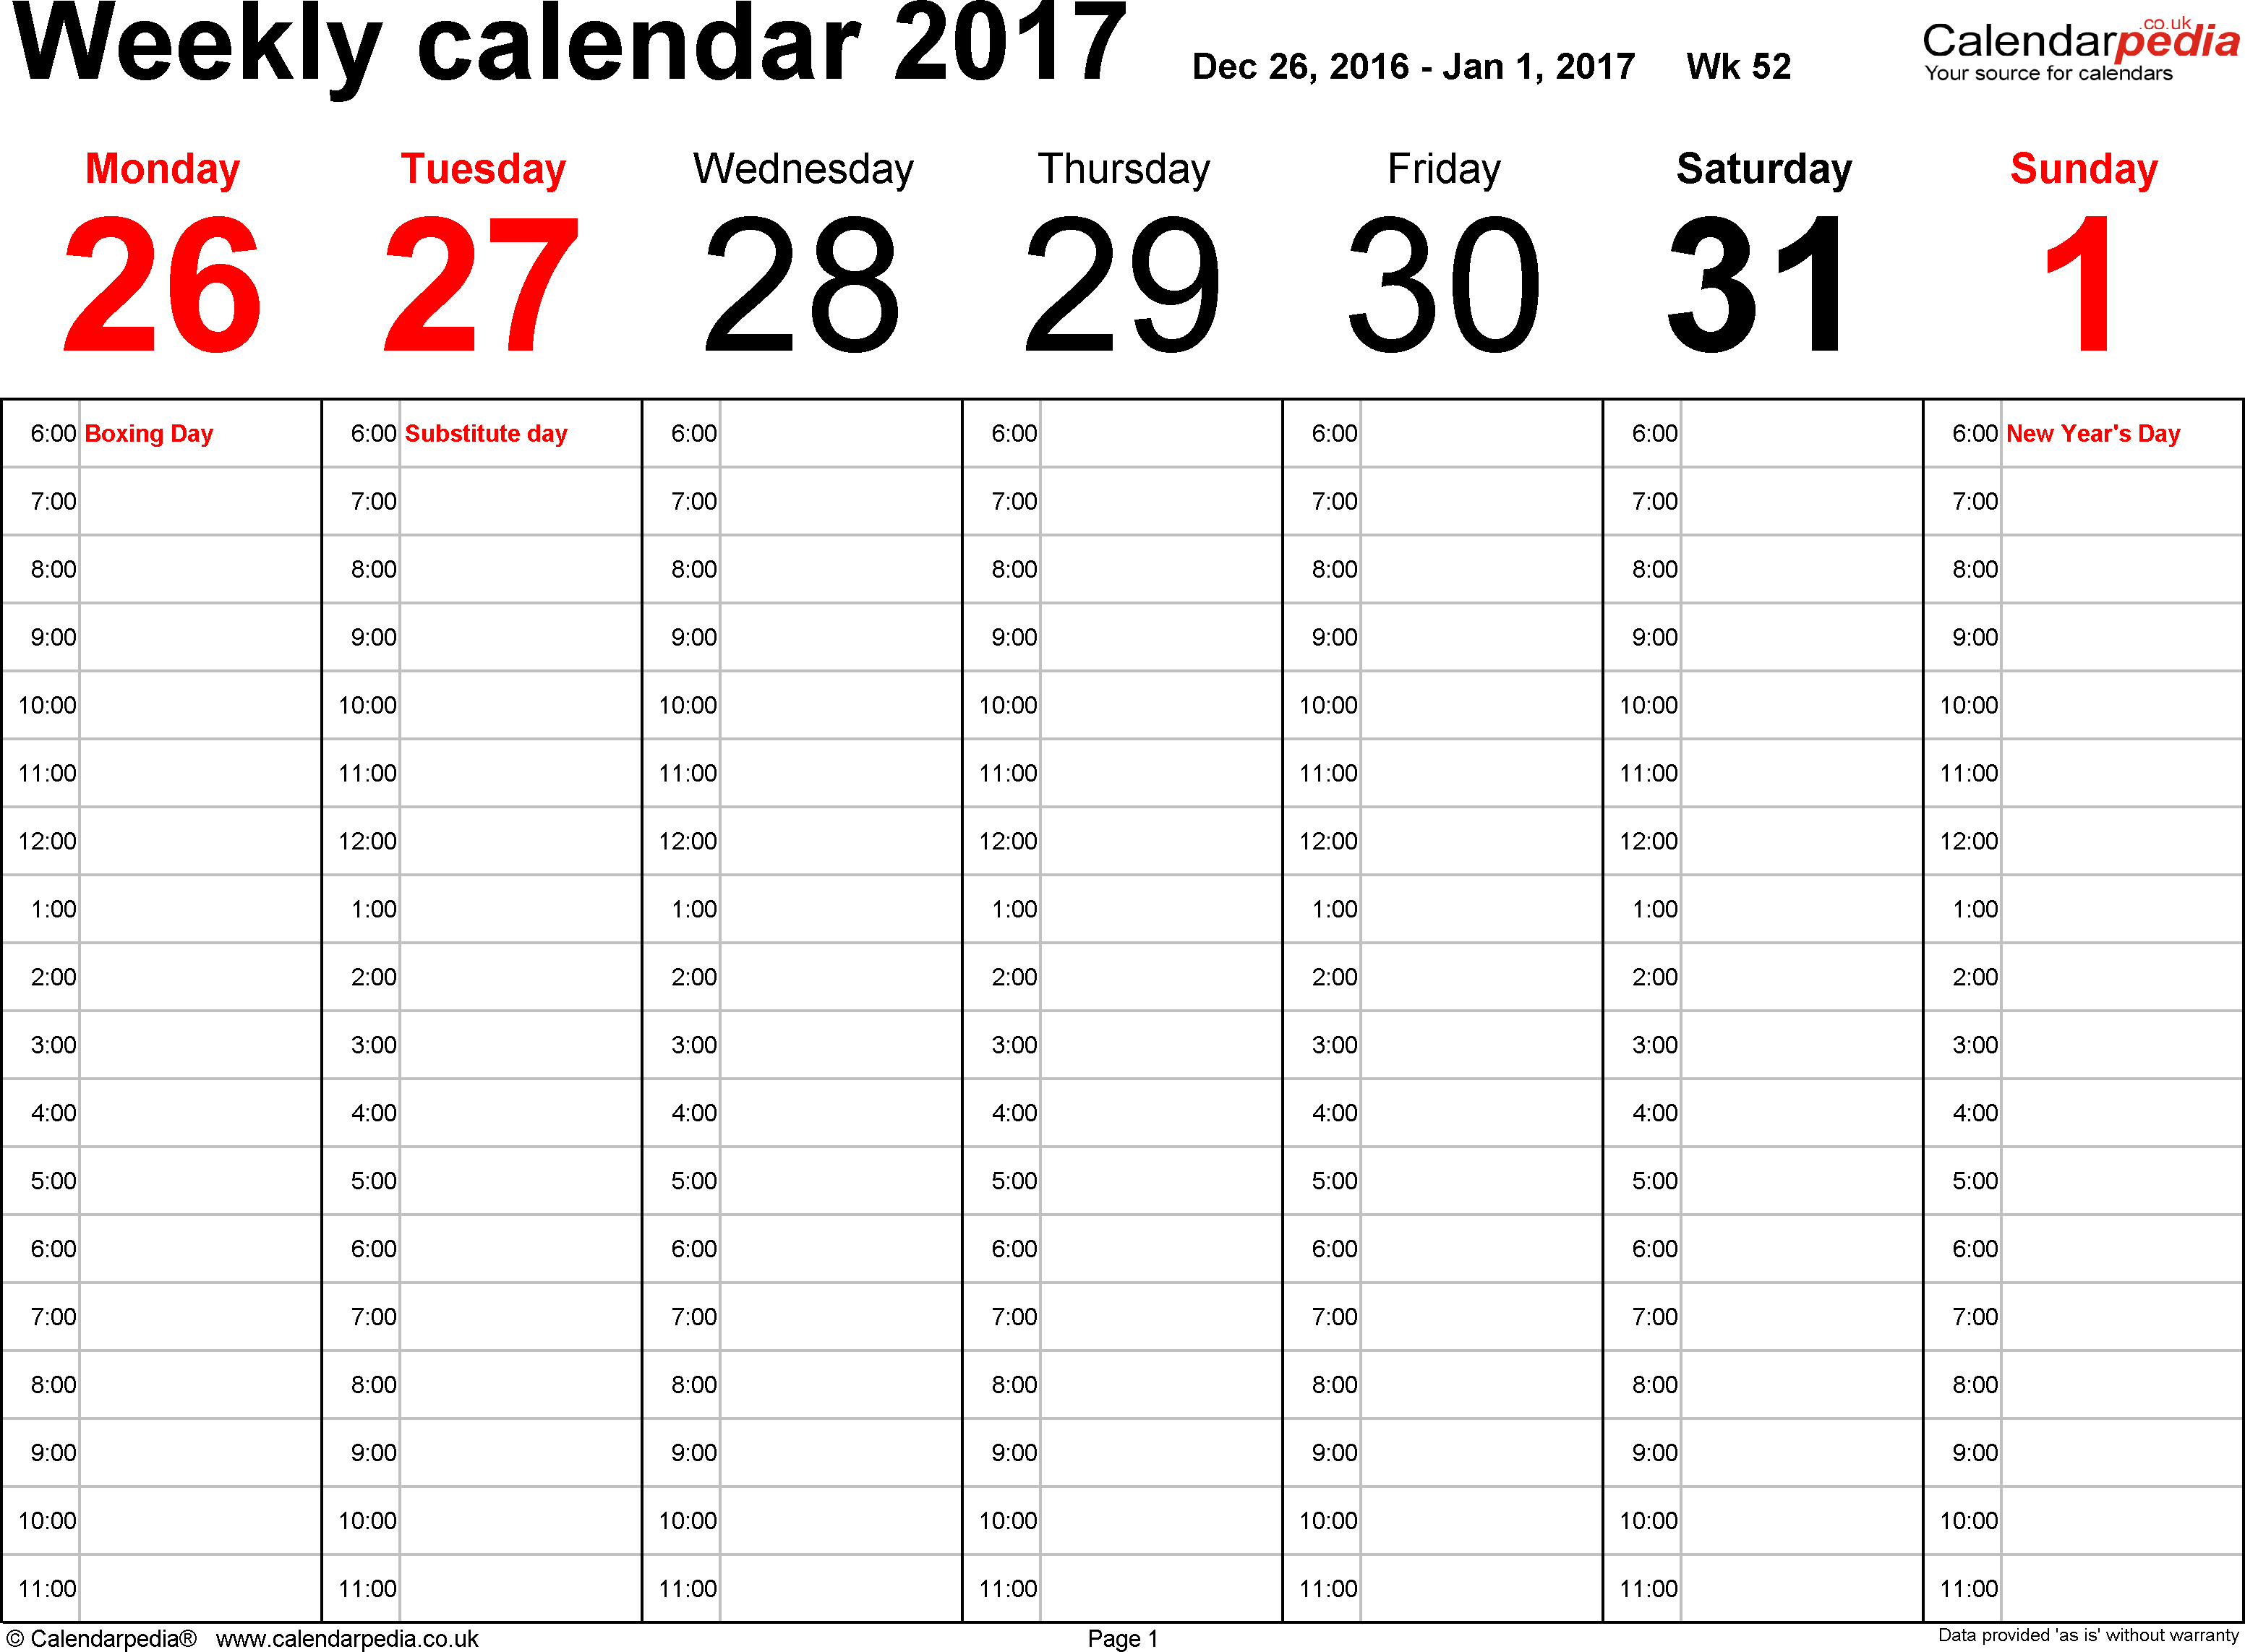 Excel template 1: Weekly calendar 2017, landscape orientation, 53 pages (1 calendar week on 1 page), time management layout (showing 18 hours per day from 6am to midnight in 1 hour steps)